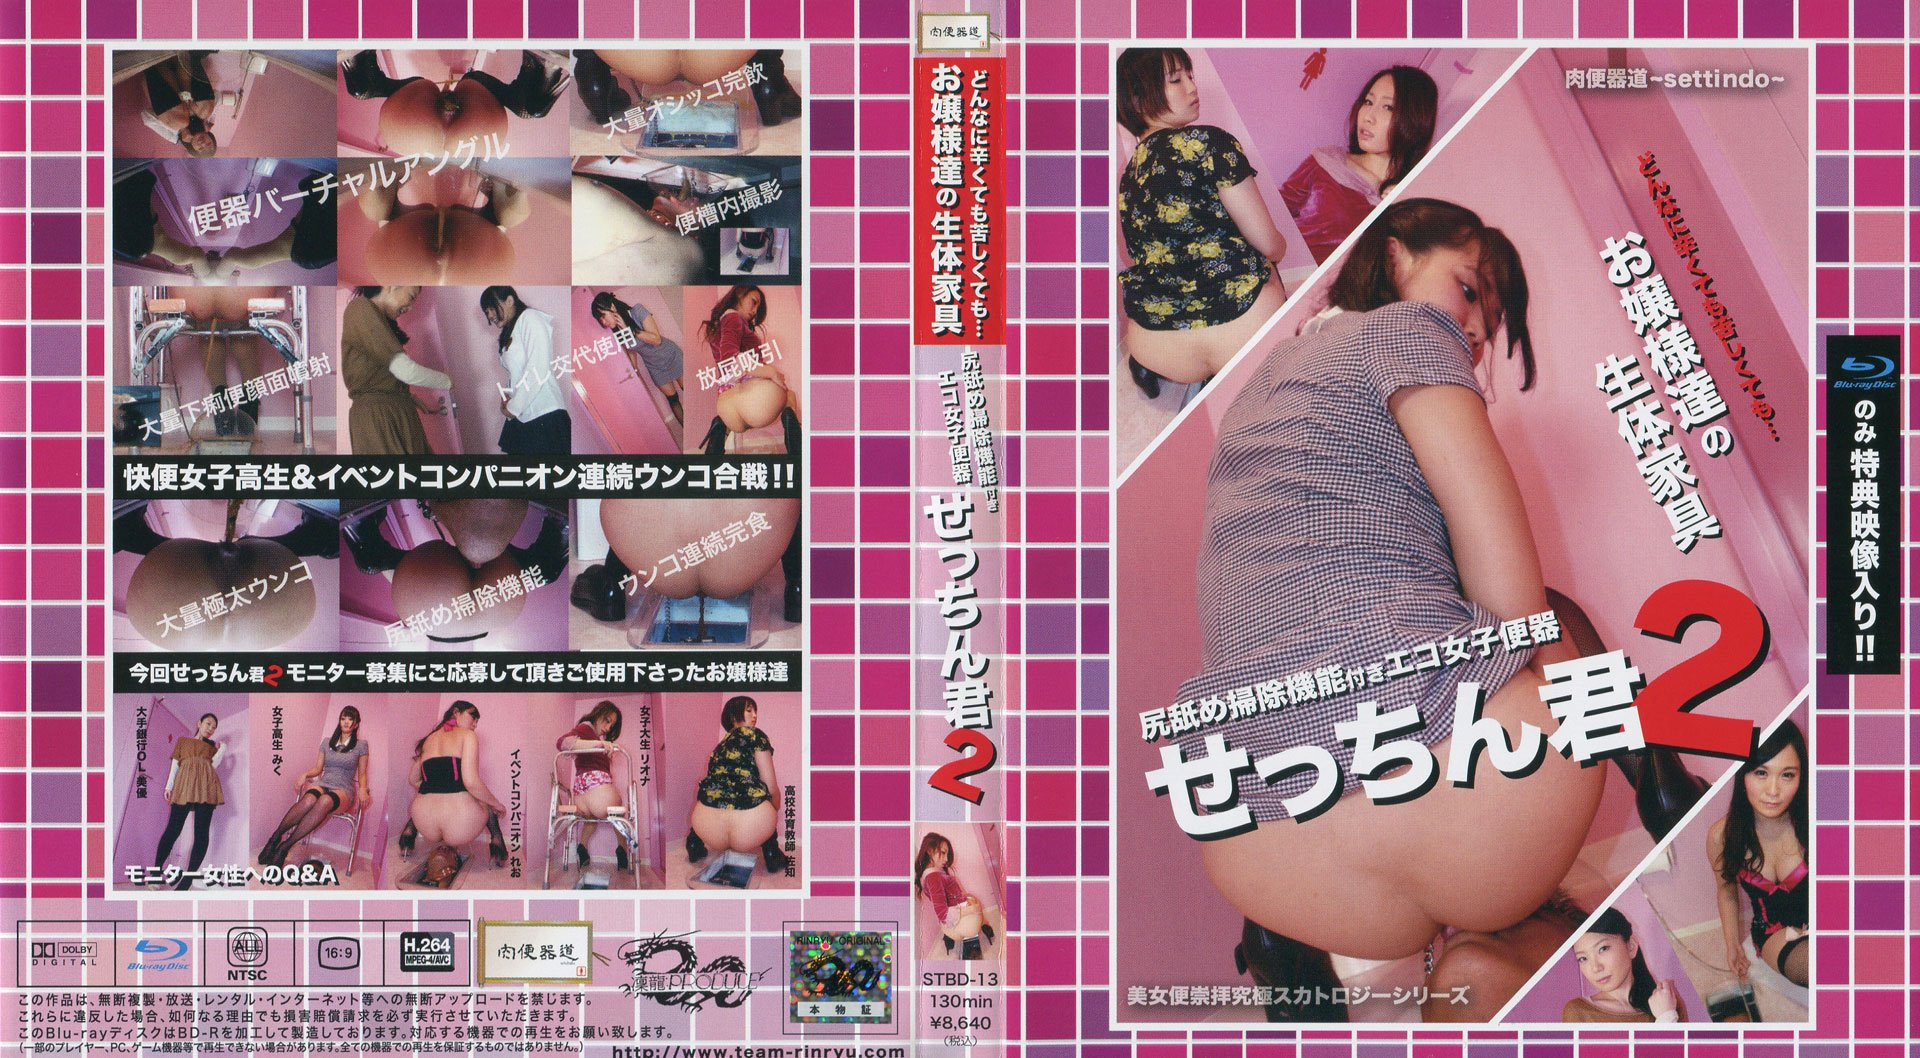 Yapoos Market  STBD-13 (HD-720p)